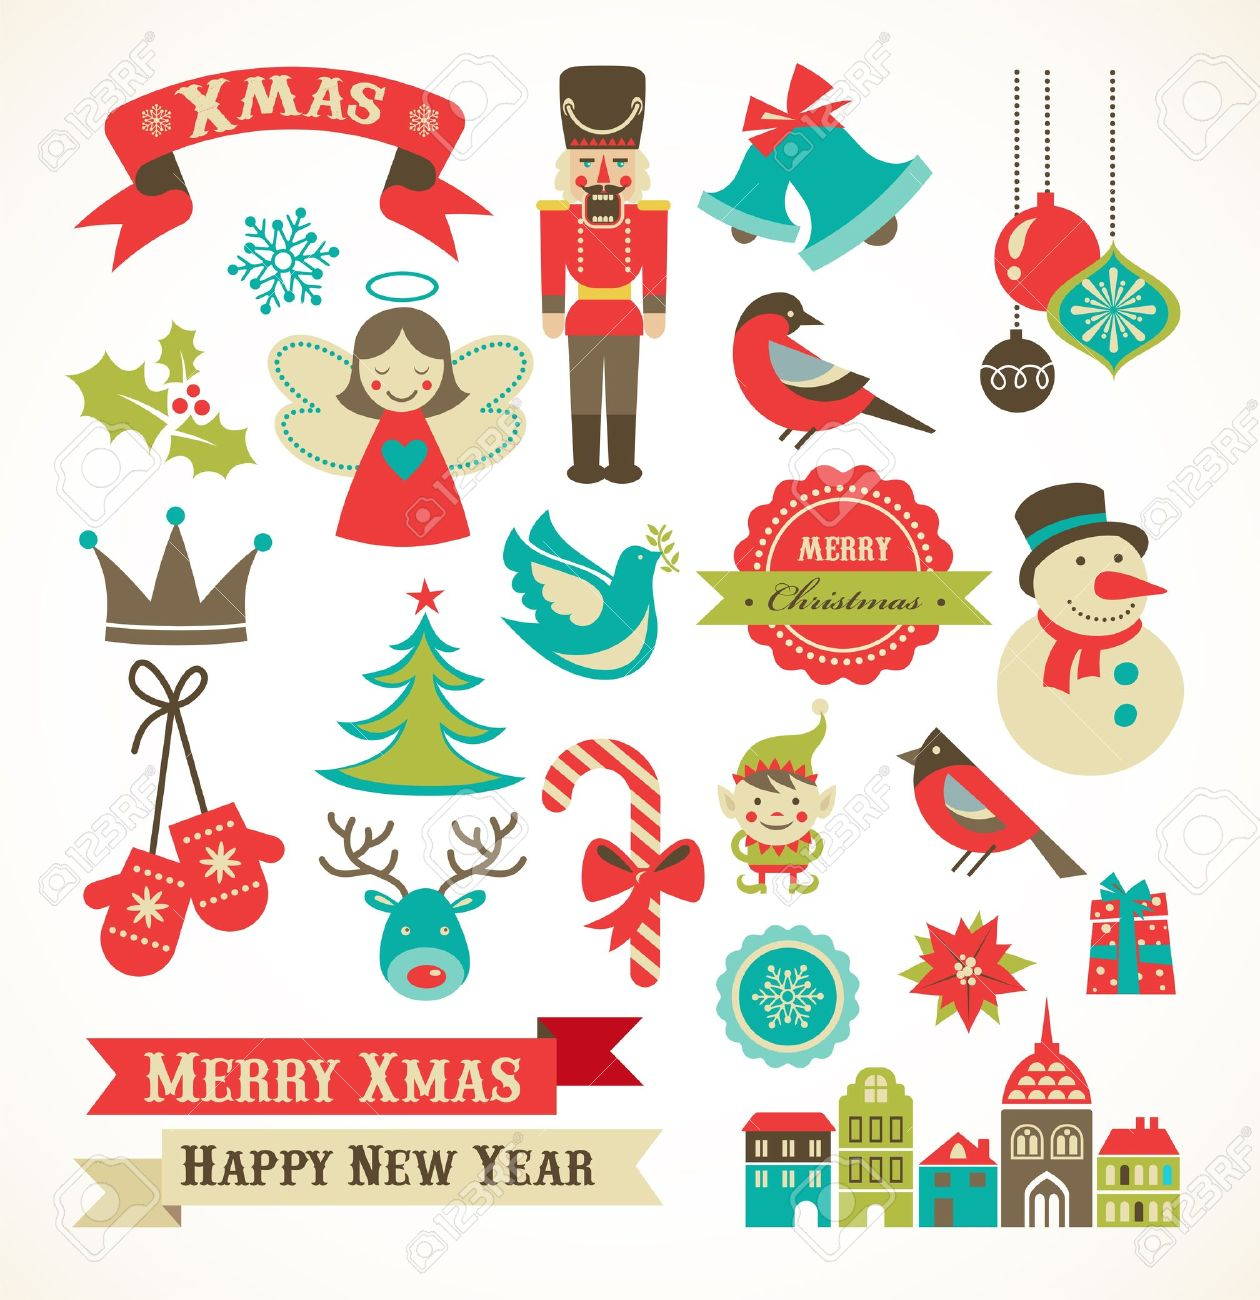 Christmas Illustrations.Christmas Retro Icons Elements And Illustrations